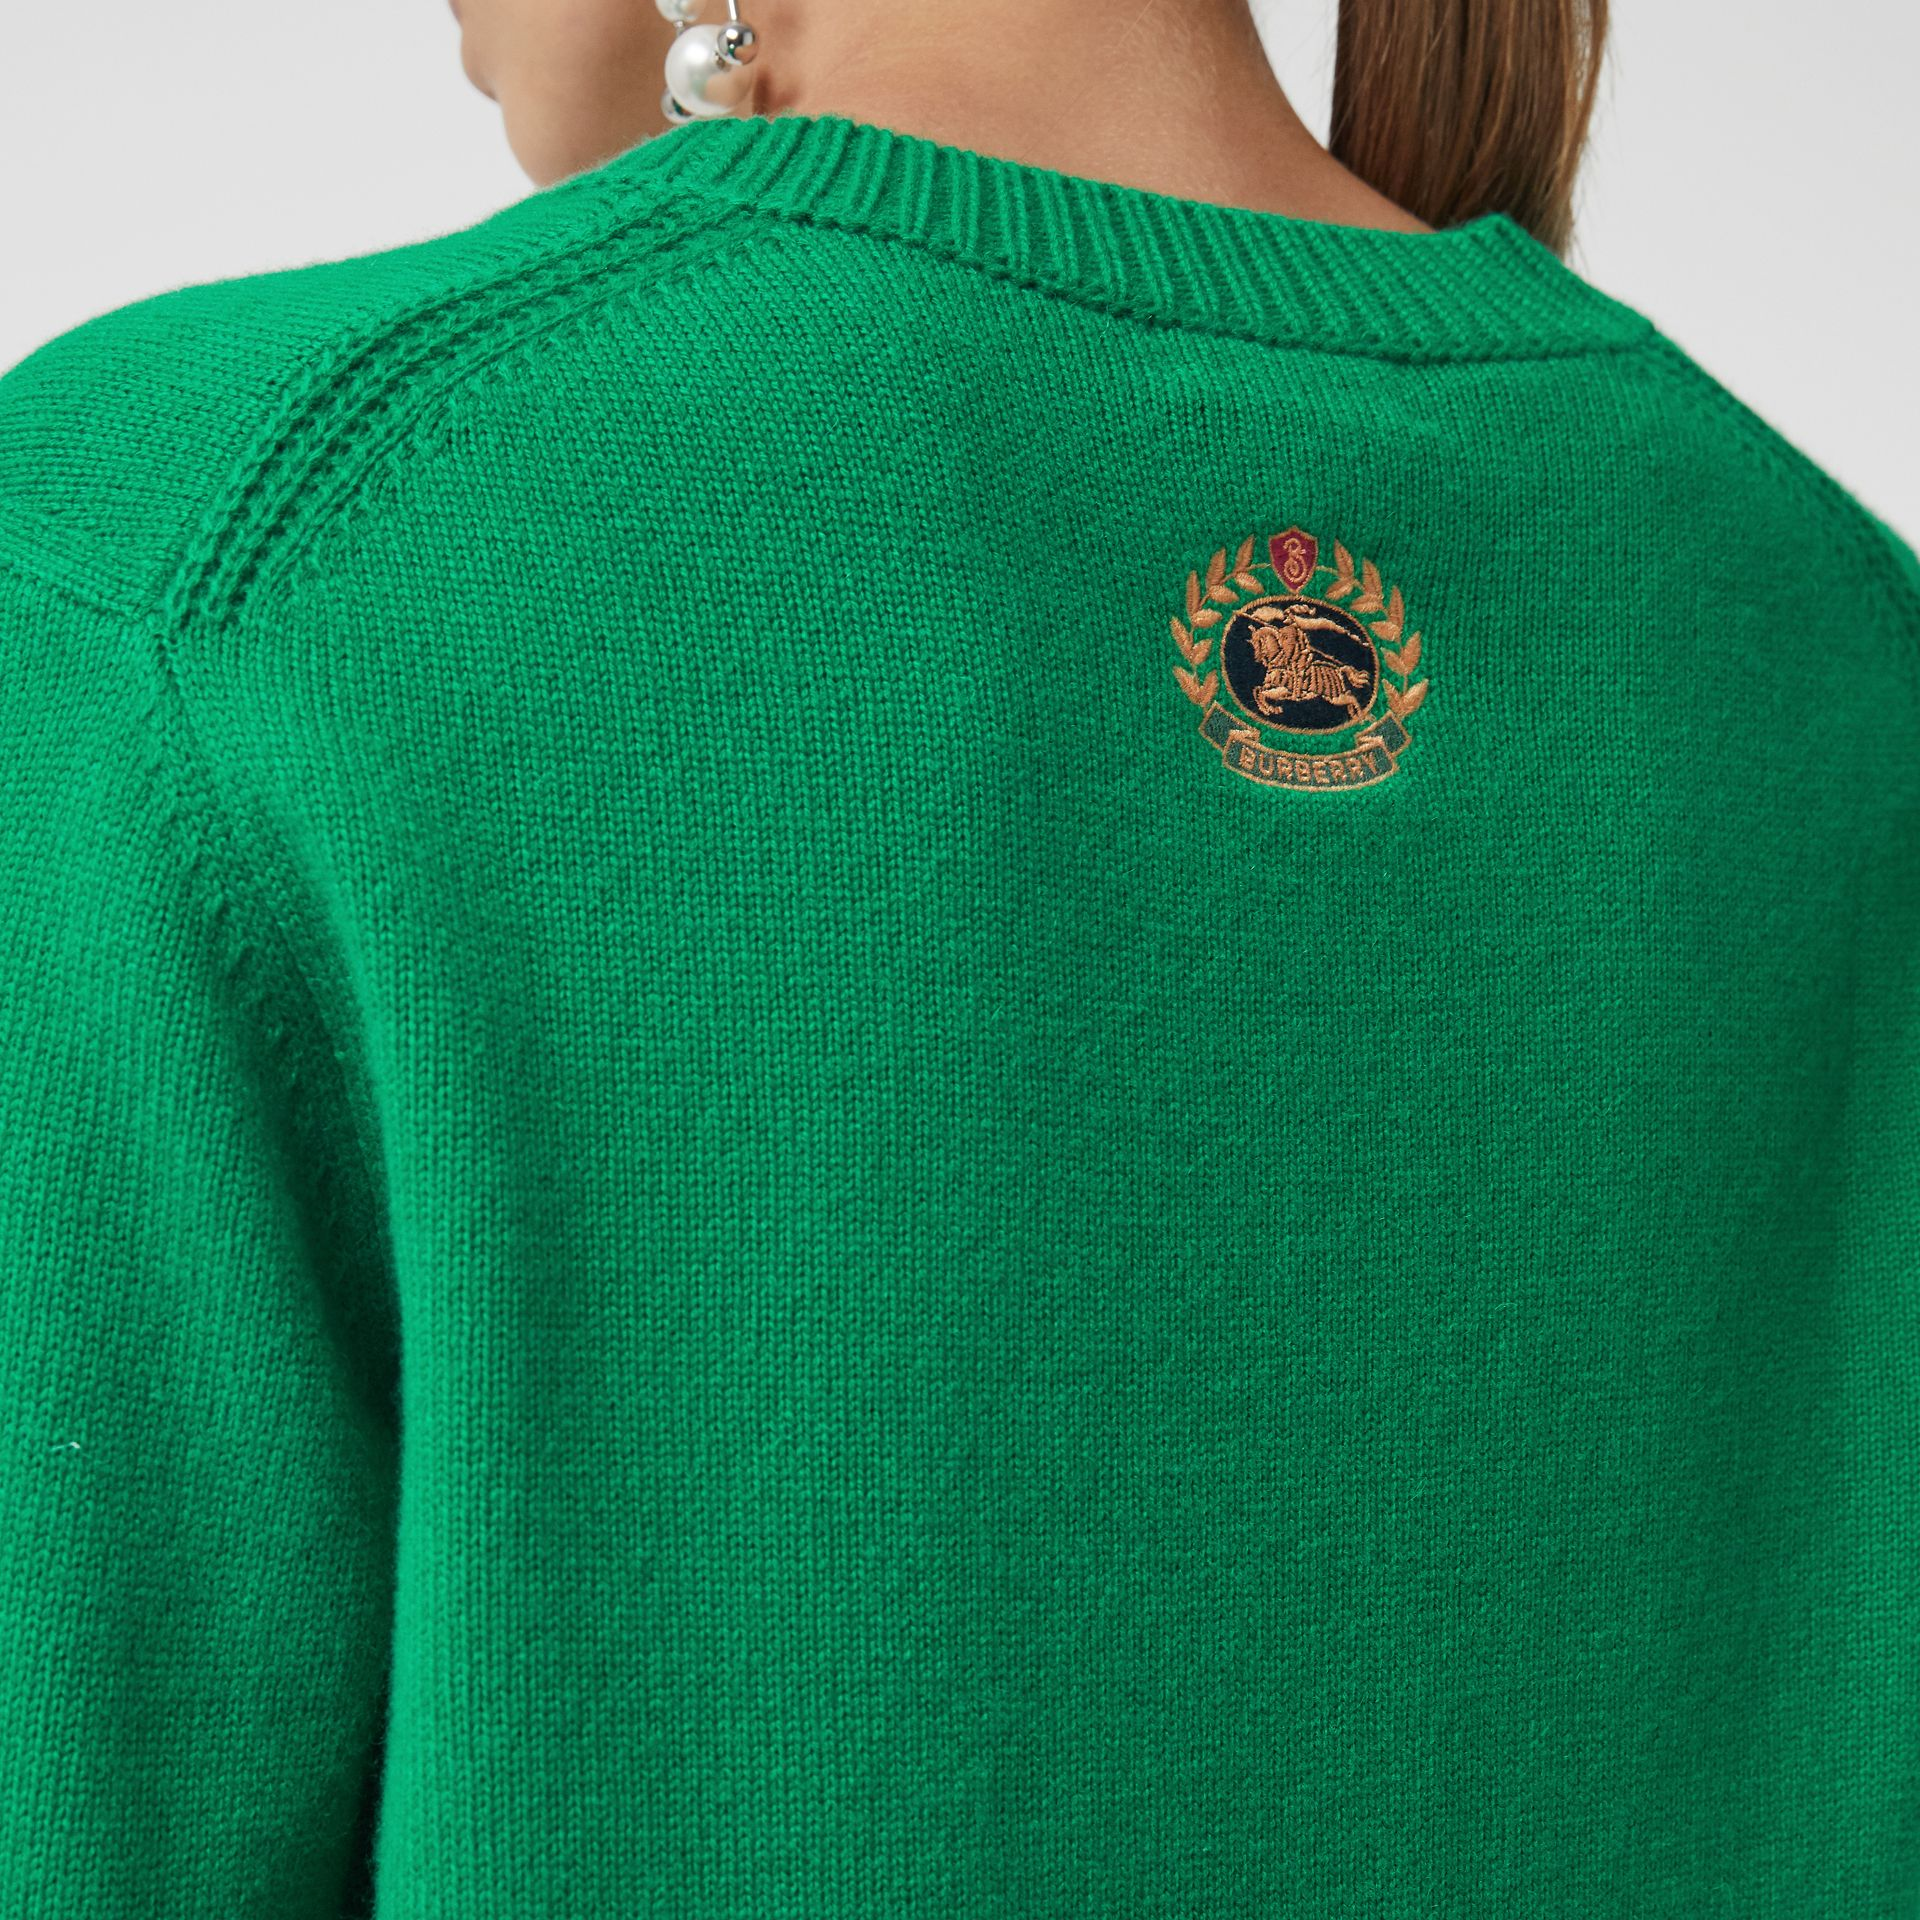 Archive Logo Appliqué Cashmere Sweater in Vibrant Green - Women | Burberry Canada - gallery image 1